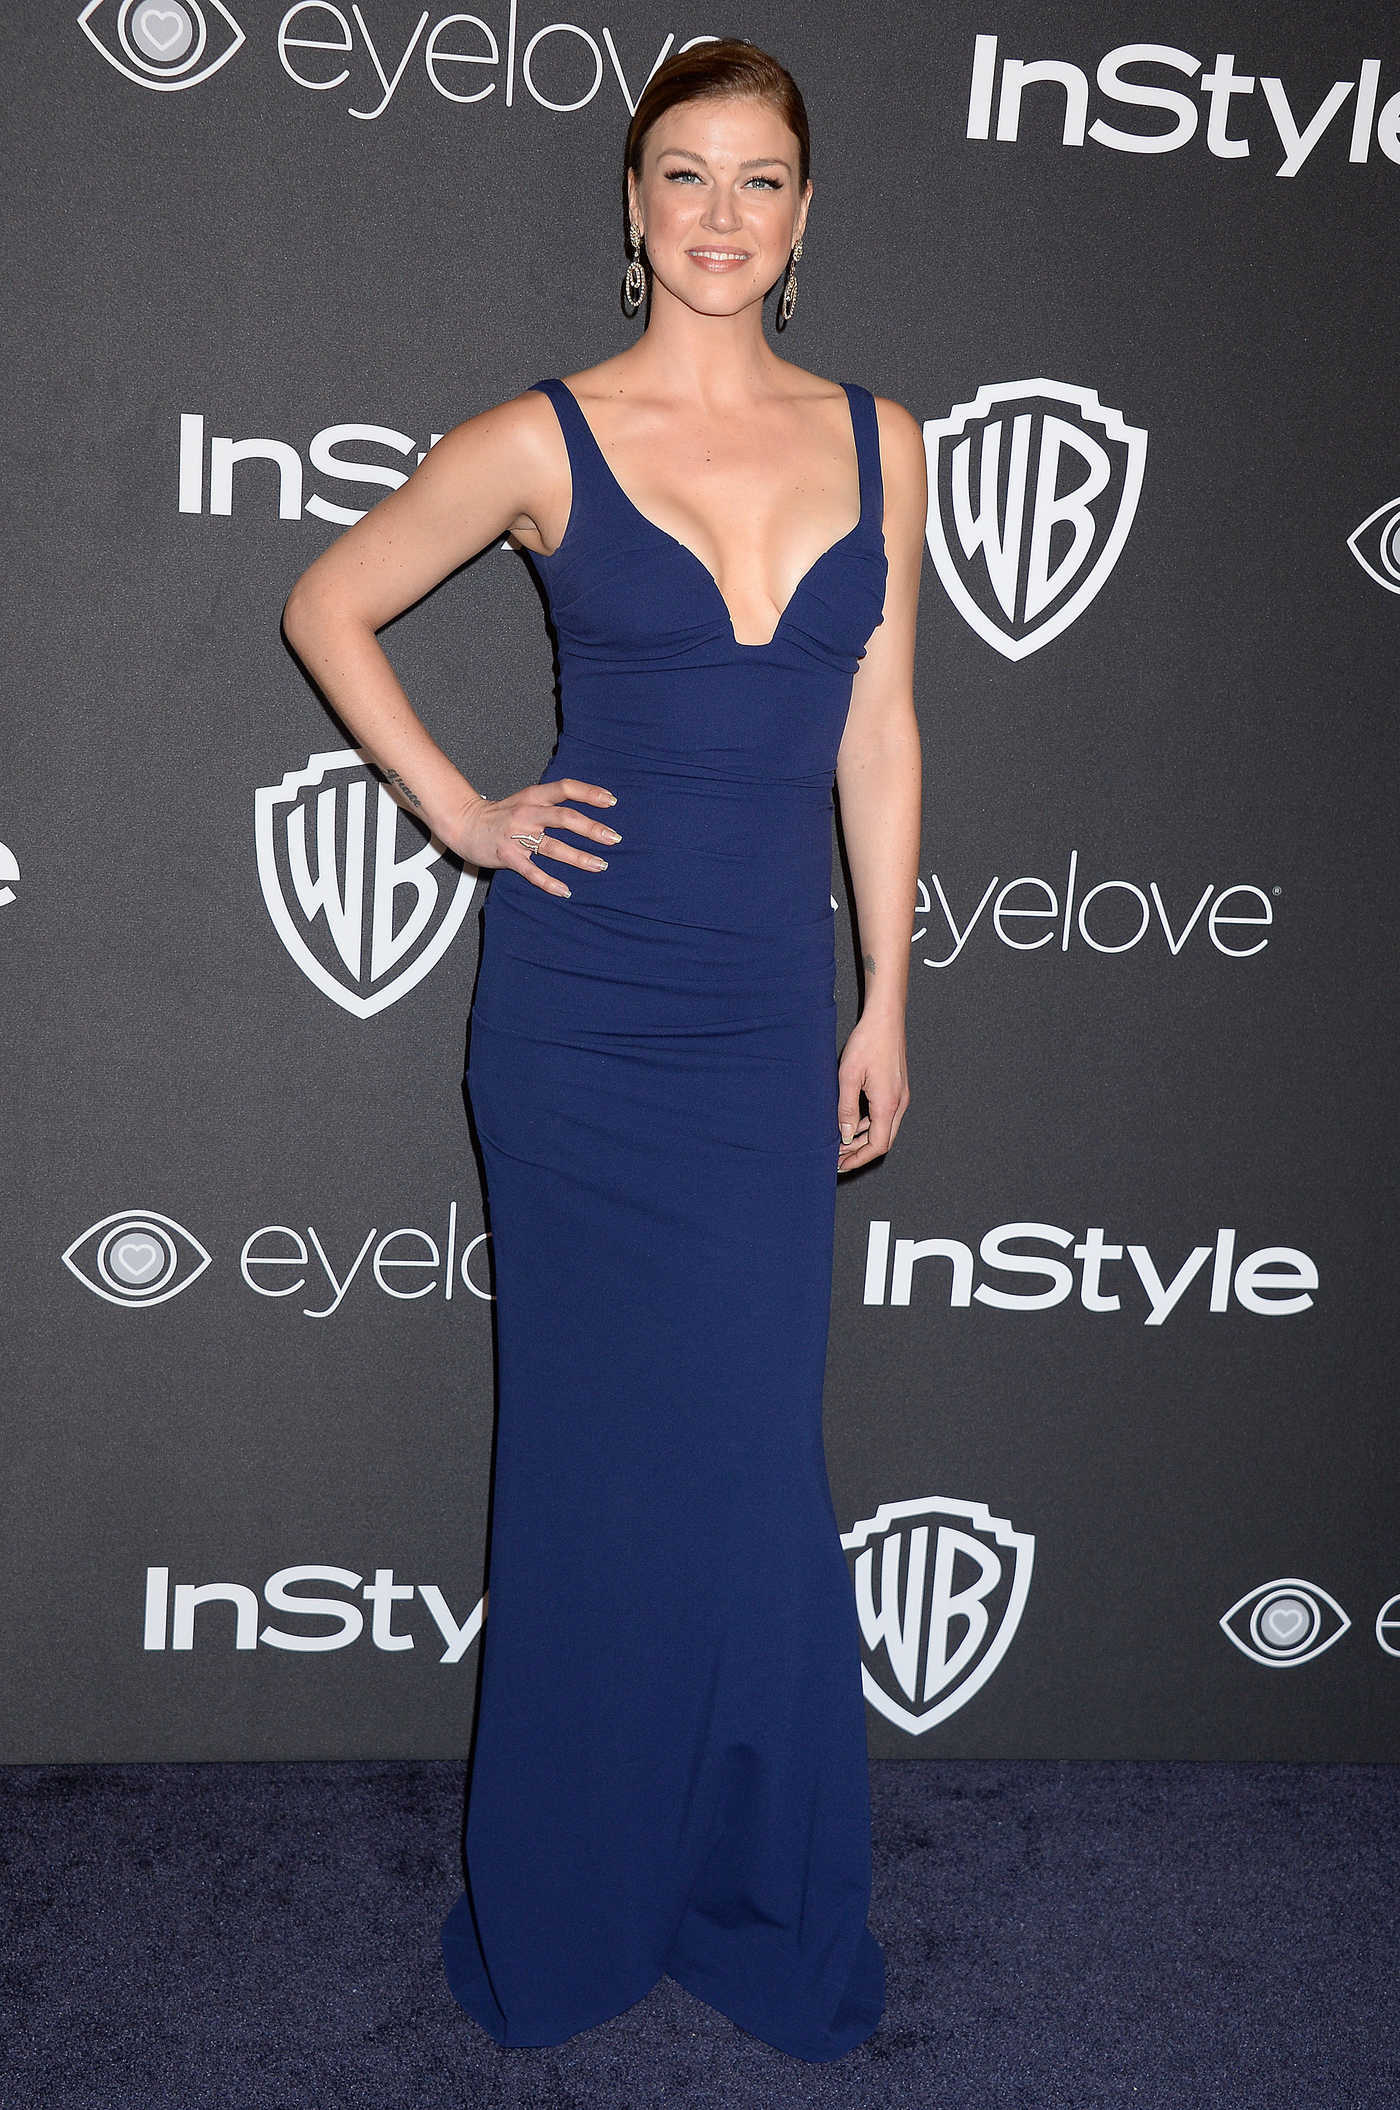 Adrianne Palicki at the 18th Annual InStyle Post-Golden Globes Party in Beverly Hills 01/08/2017